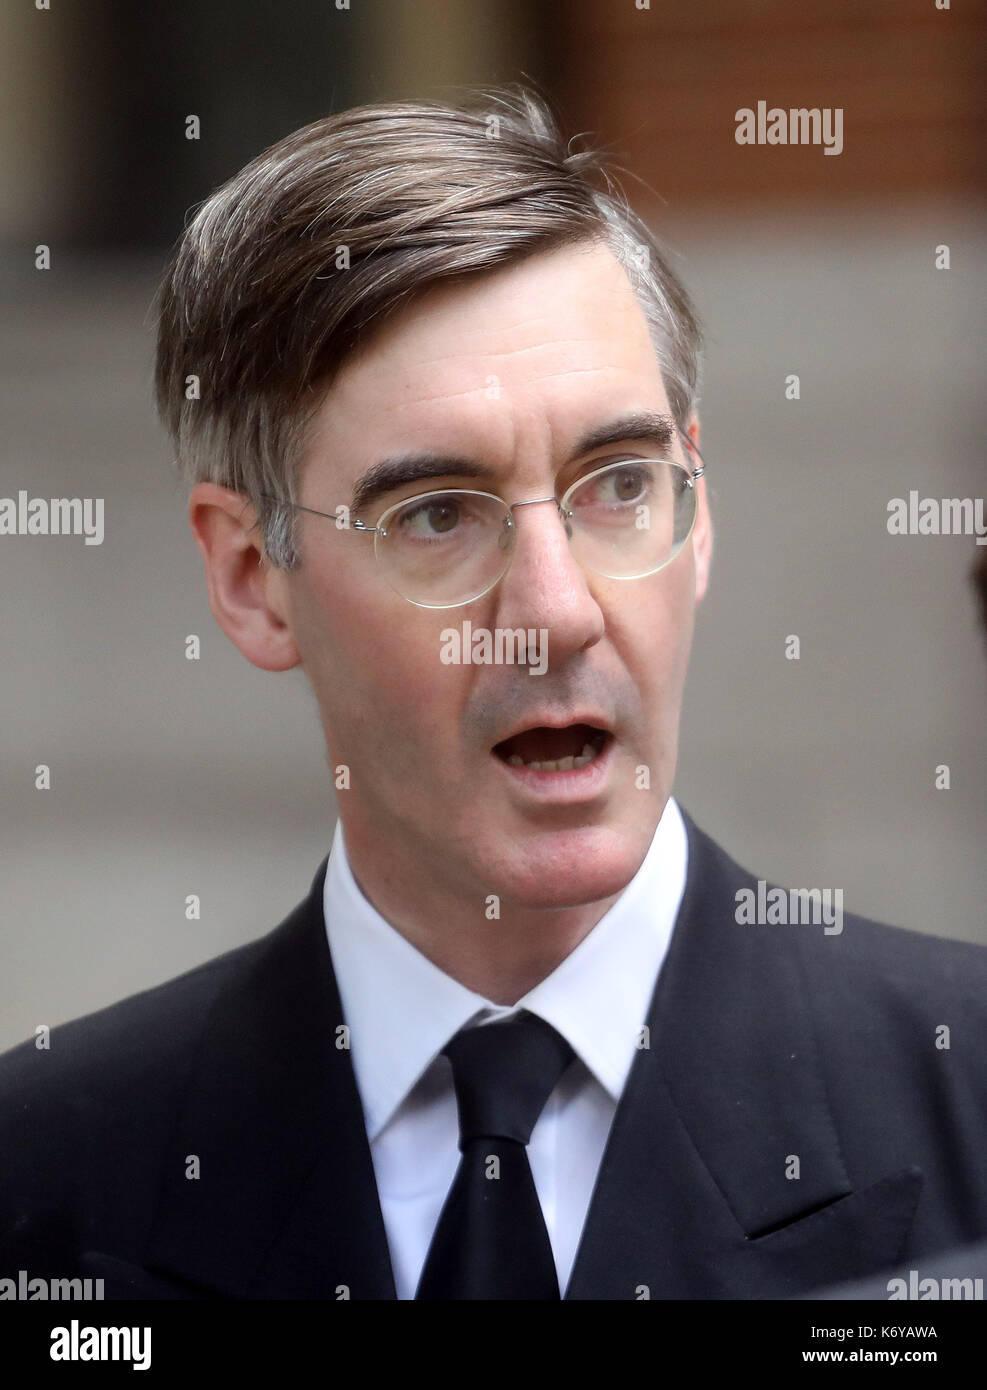 Jacob Rees-Mogg at funeral of Cardinal - Stock Image